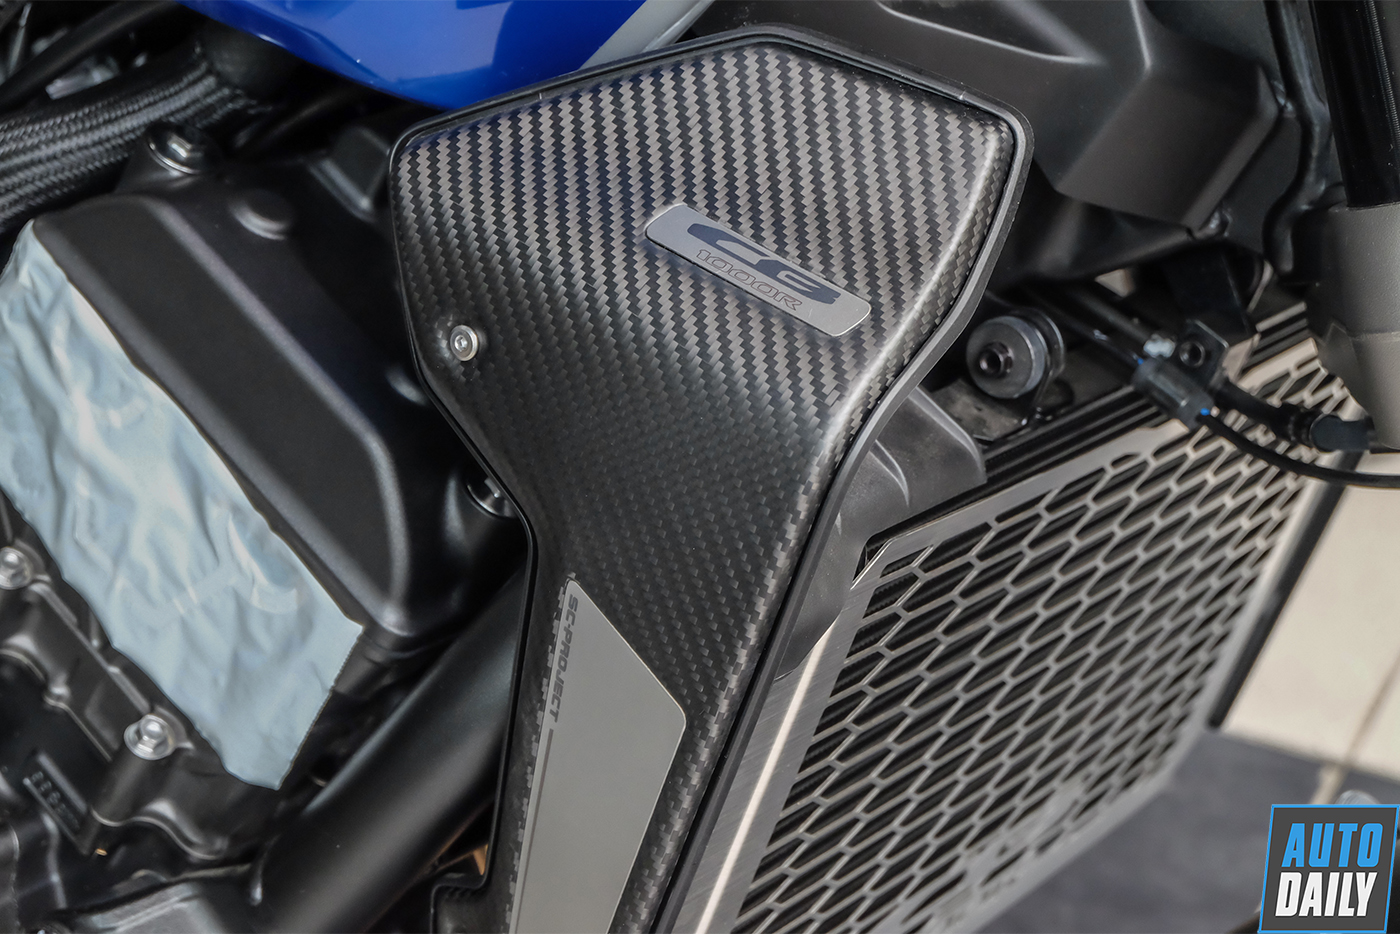 honda-cb1000r-plus-limited-edition-2019-14.jpg